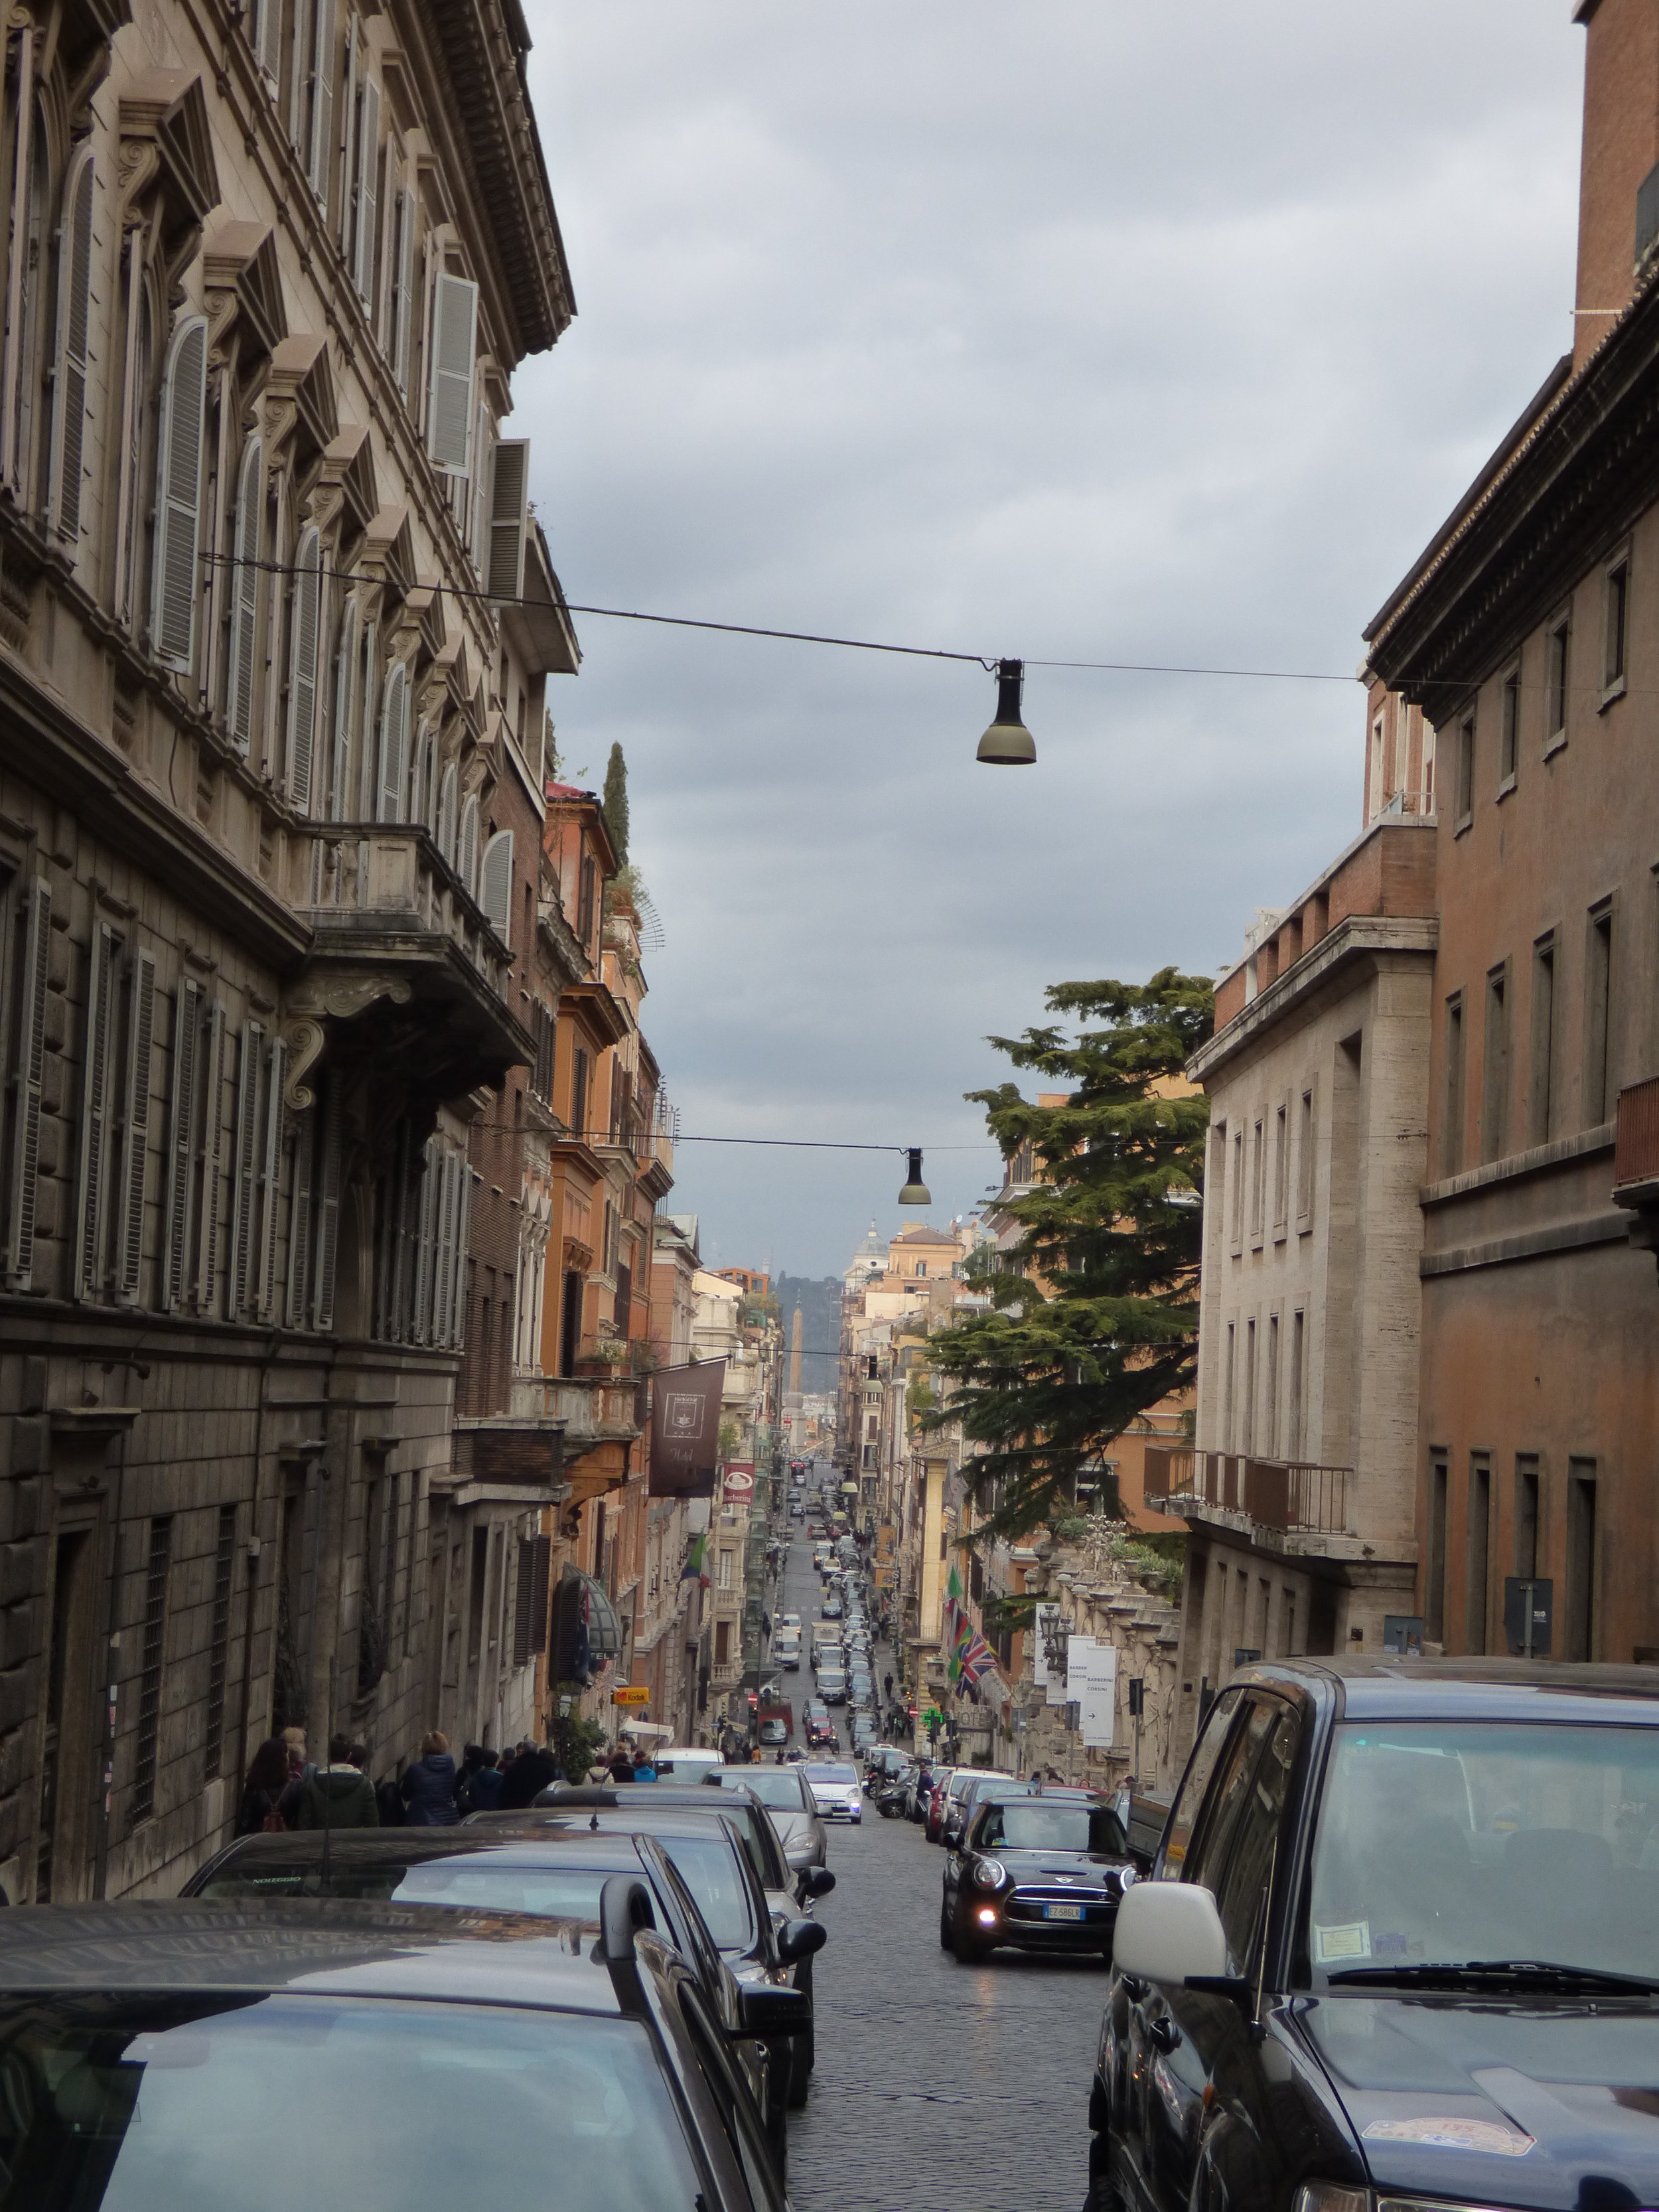 View from the intersection towards Piazza di Spagna